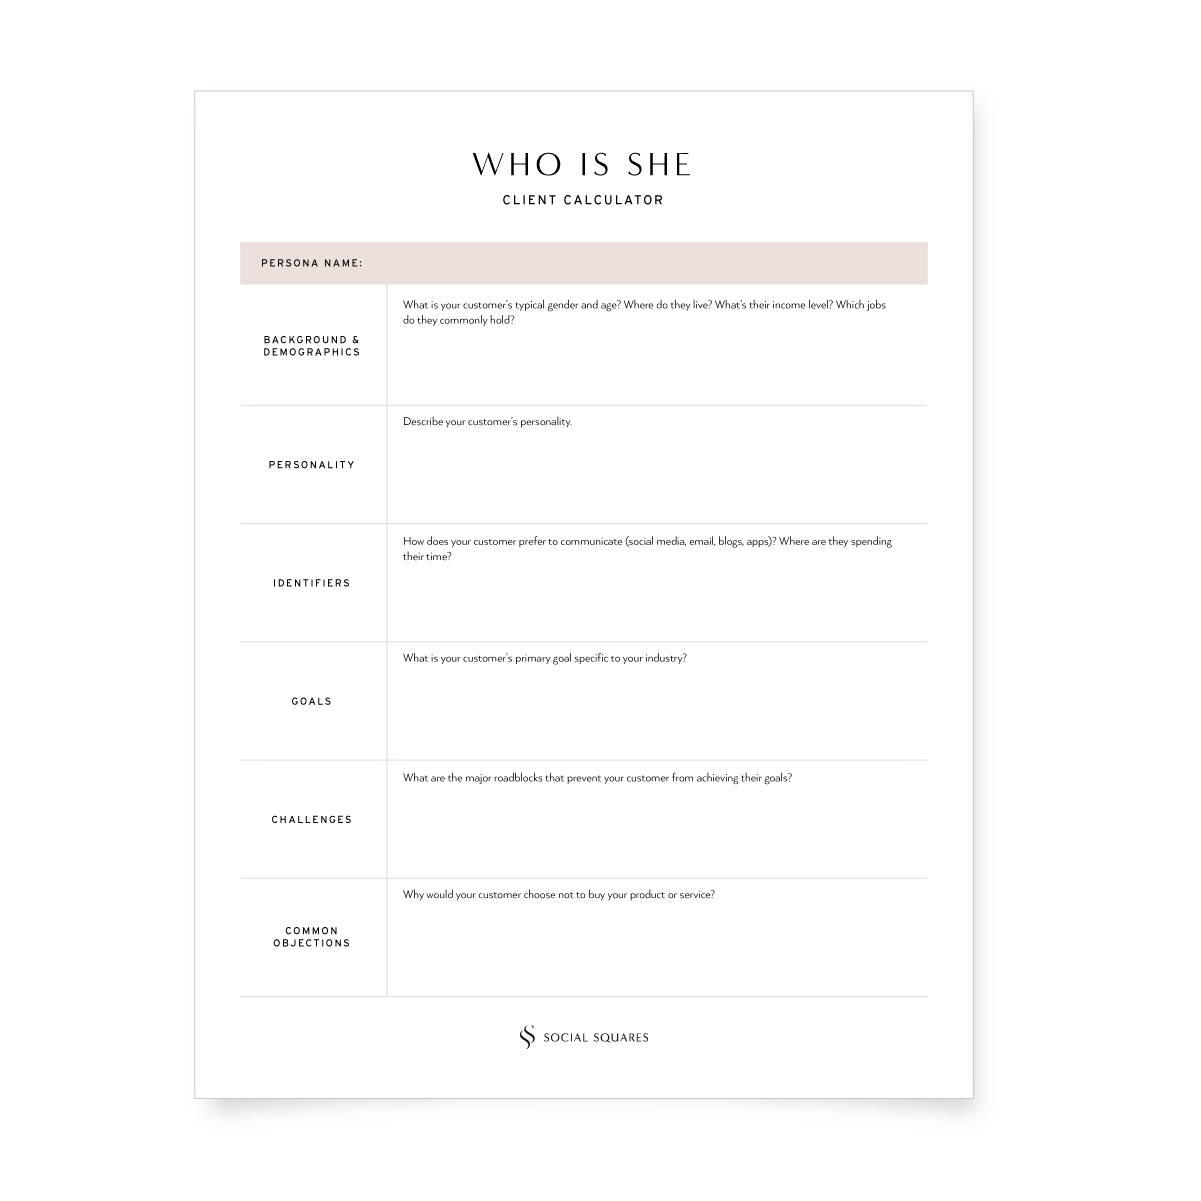 Free Worksheet Client Calculator